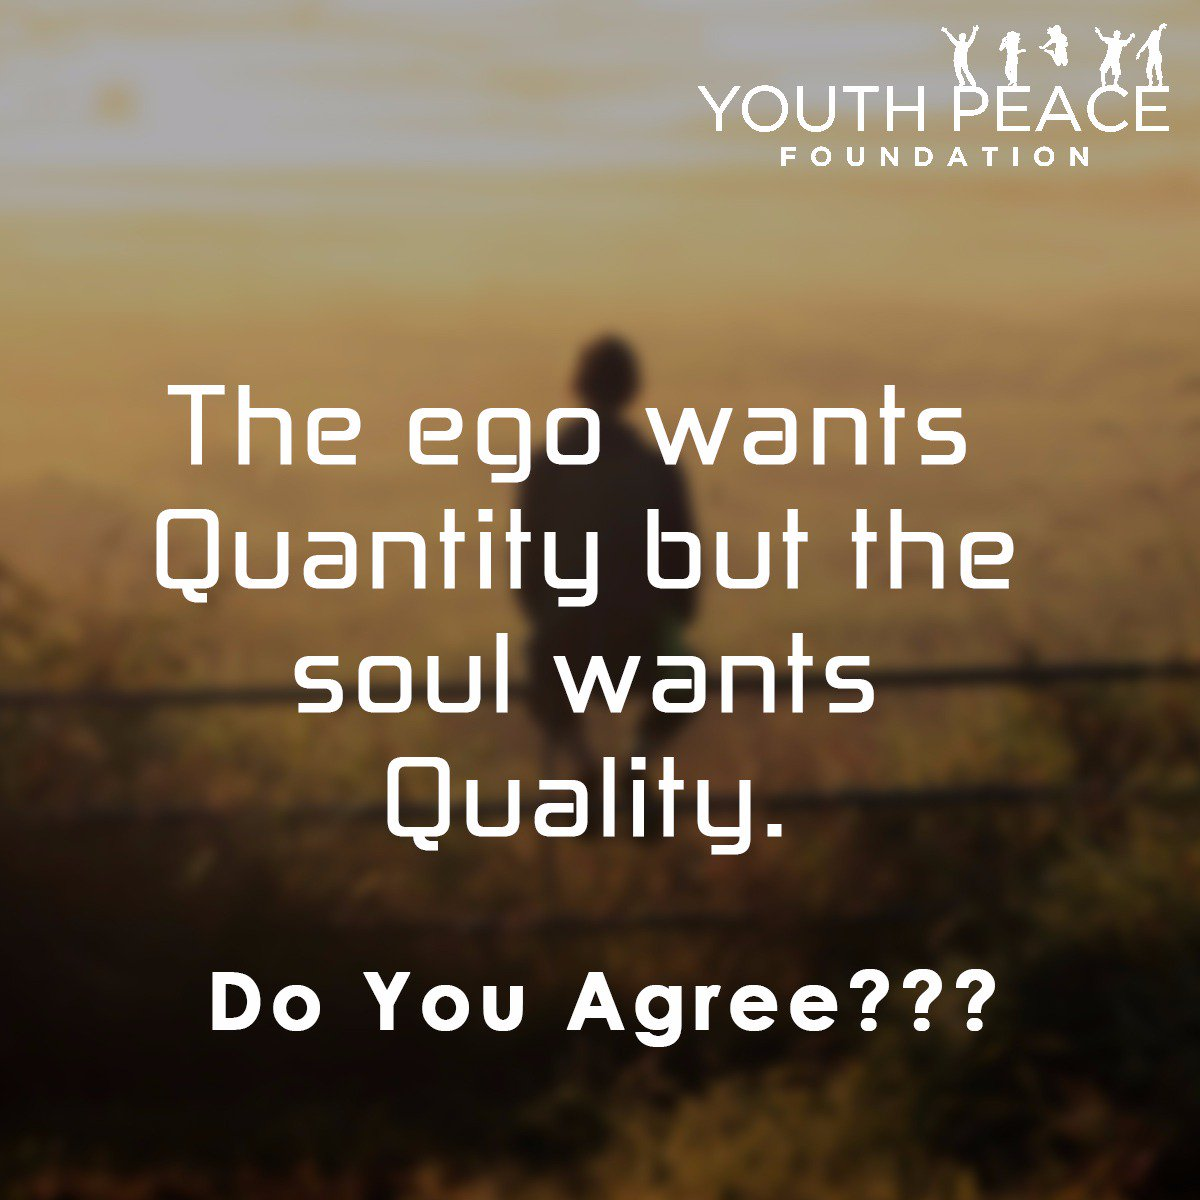 &quot;The #ego wants #quantity but the #soul wants #quality.&quot;  Do you agree??? <br>http://pic.twitter.com/tDw3ktEvn1